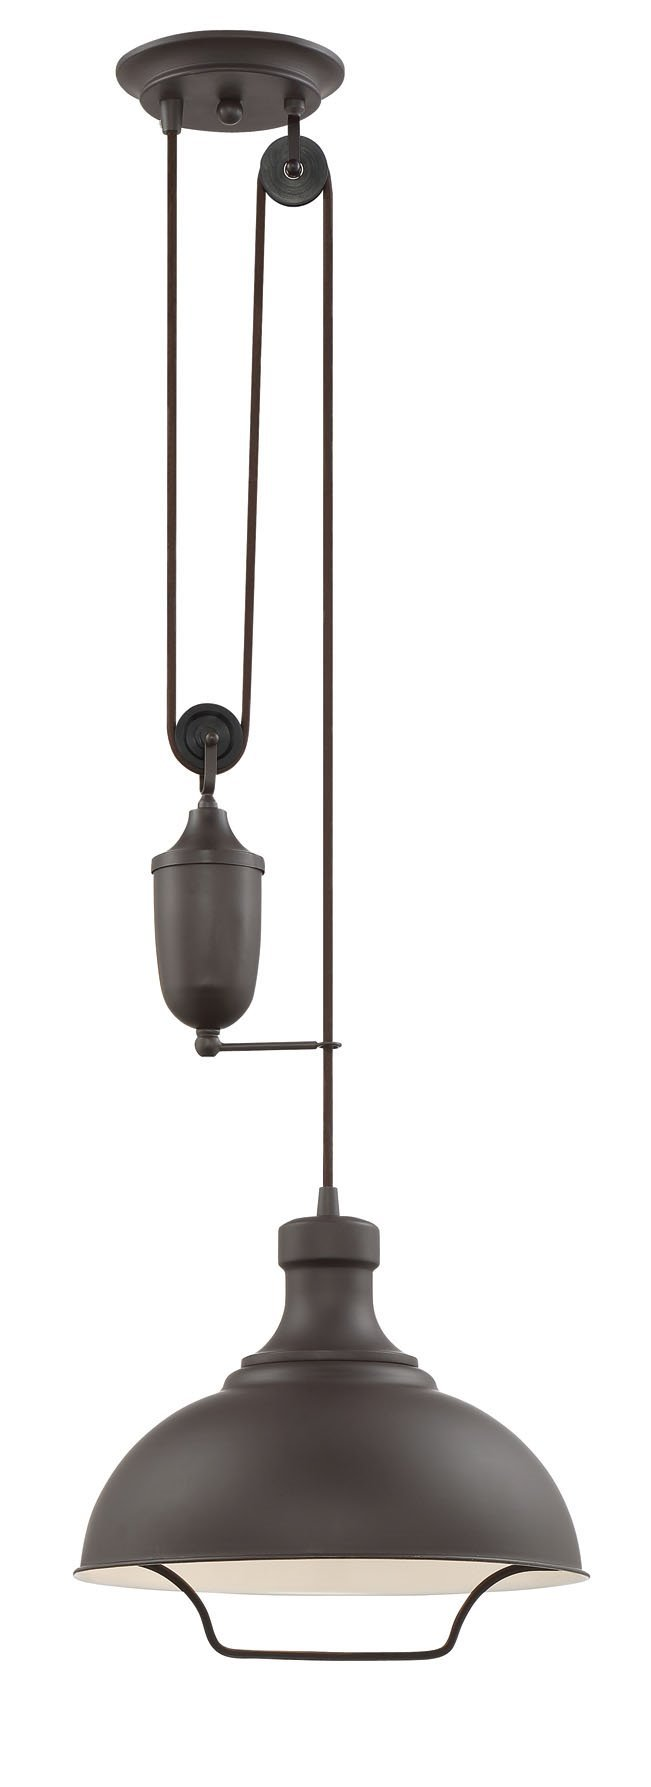 Kira Home Sequoia 13'' Large Industrial Pendant Light + Pulley System Design + Adjustable Height, Oil-Rubbed Bronze Finish